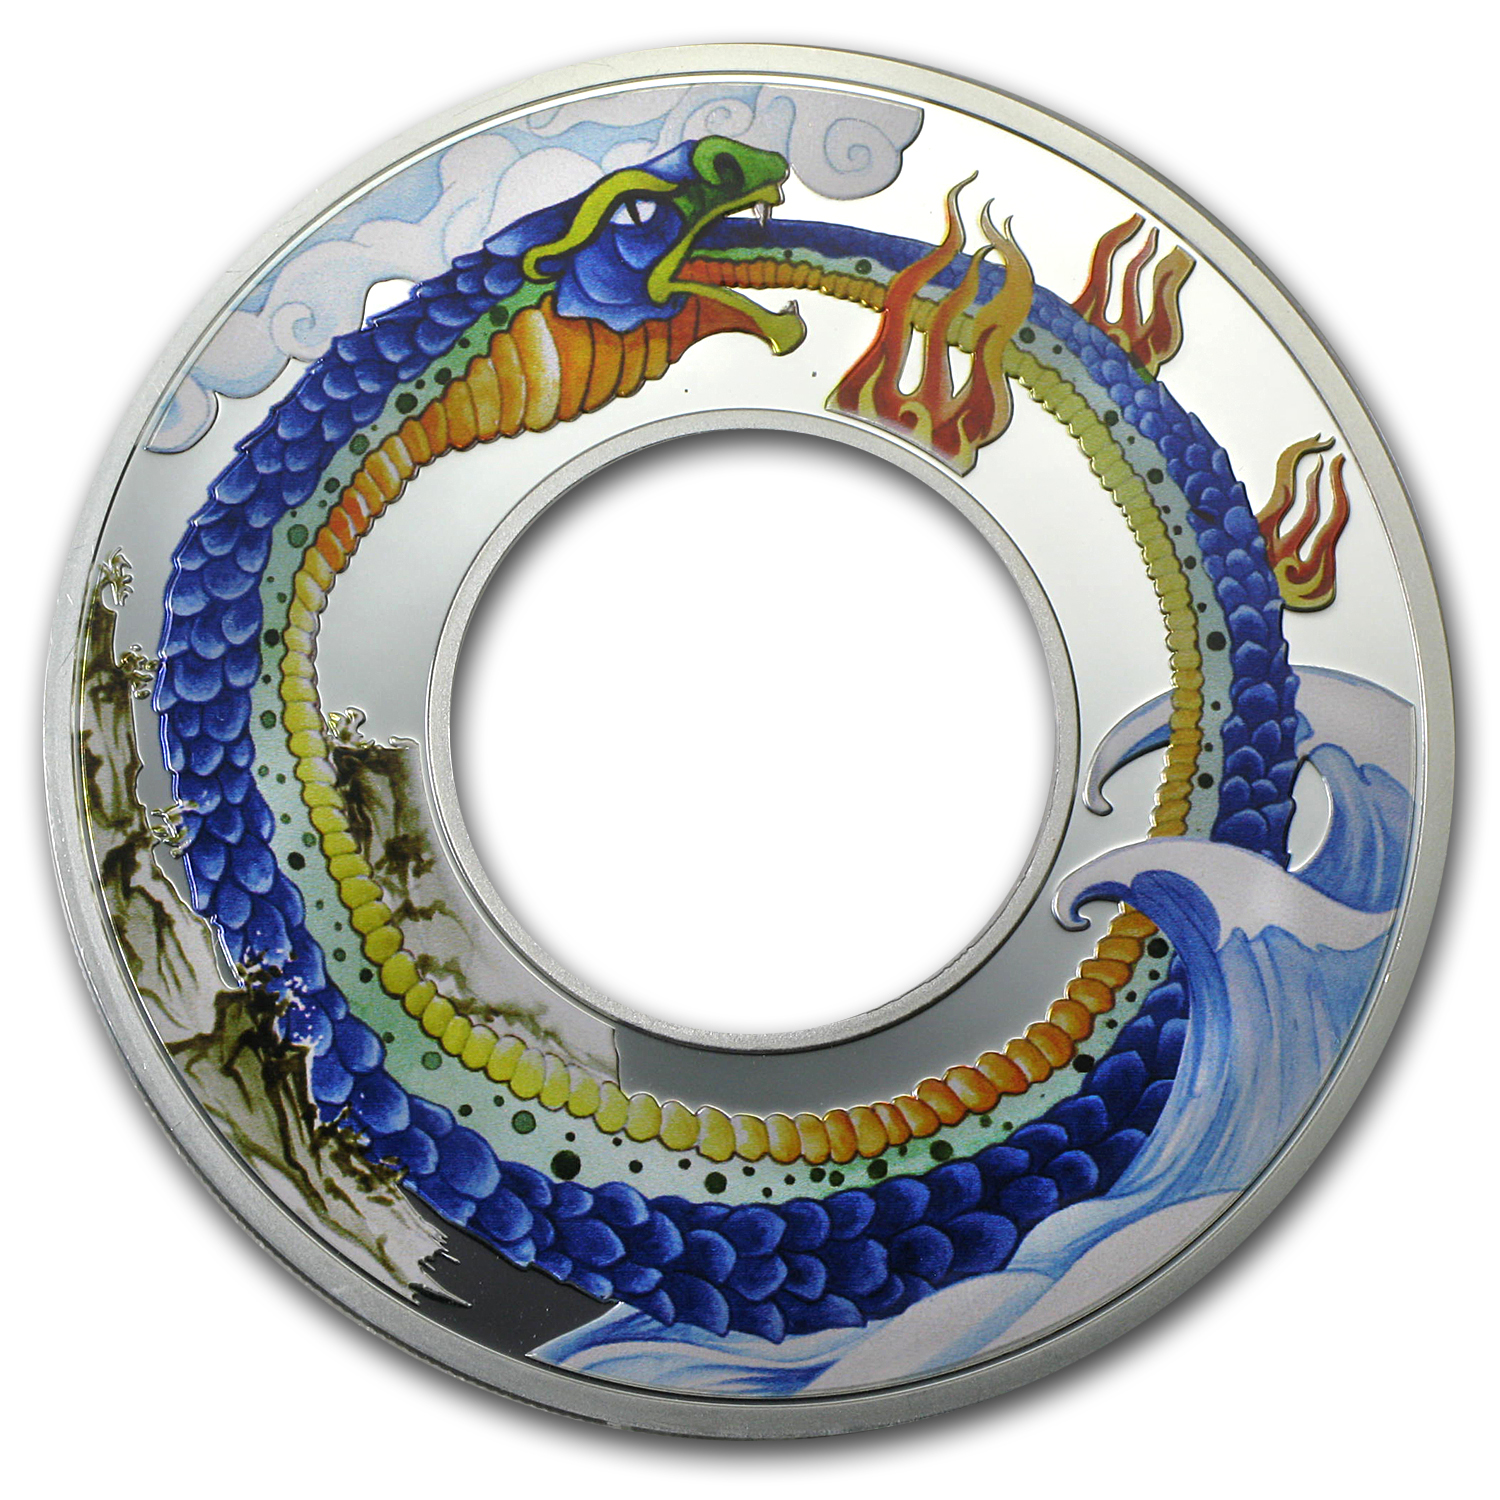 Tokelau 2013 Proof Silver $10 Infinity Snake Ring Coin